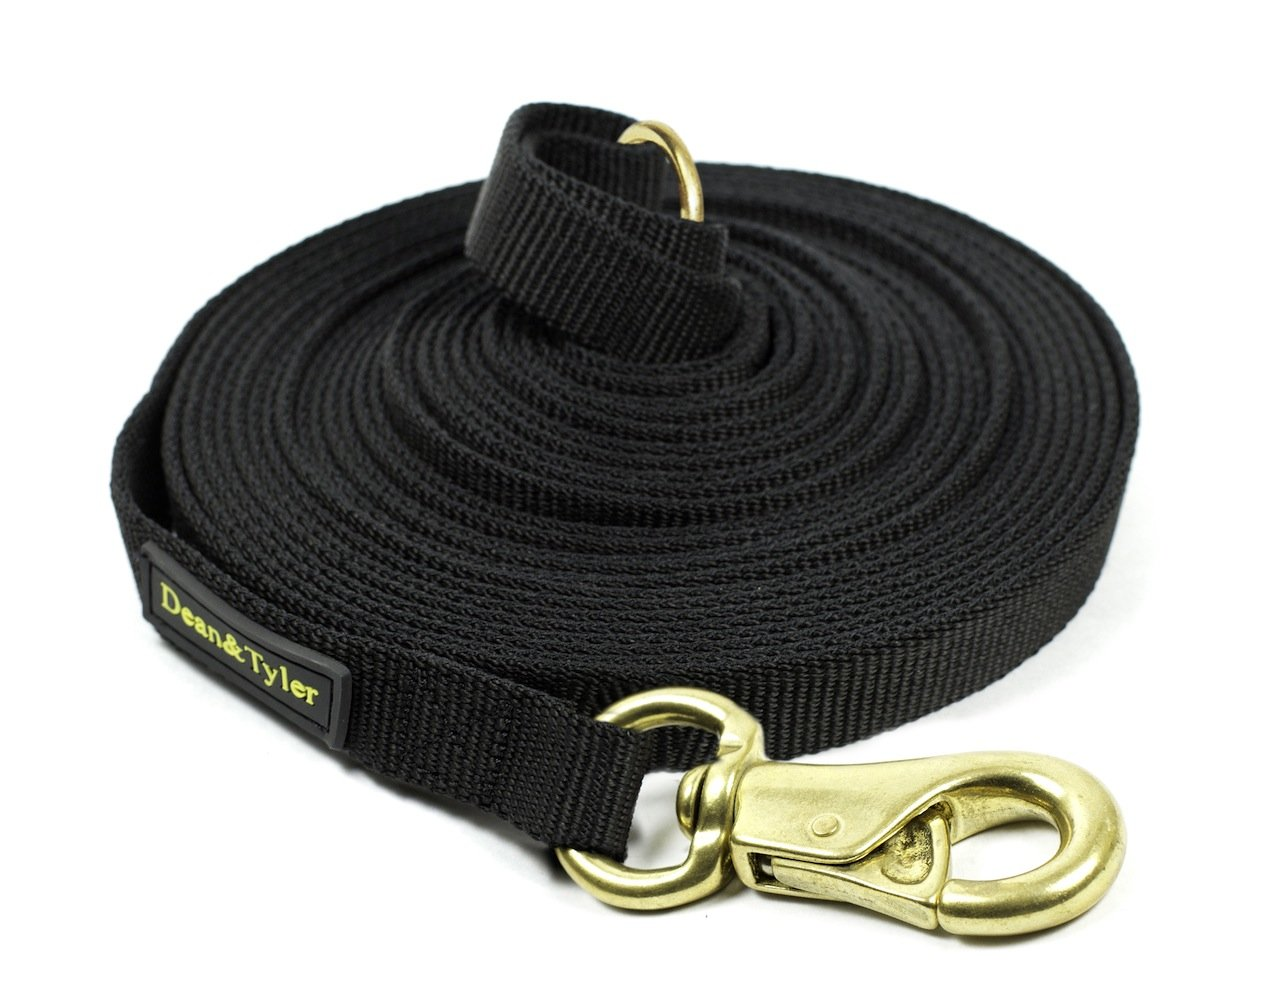 Dean & Tyler Track Massive Brass Snap Single-Ply Nylon Leash with Ring on Handle, 135-Feet by 3 4-Inch, Black